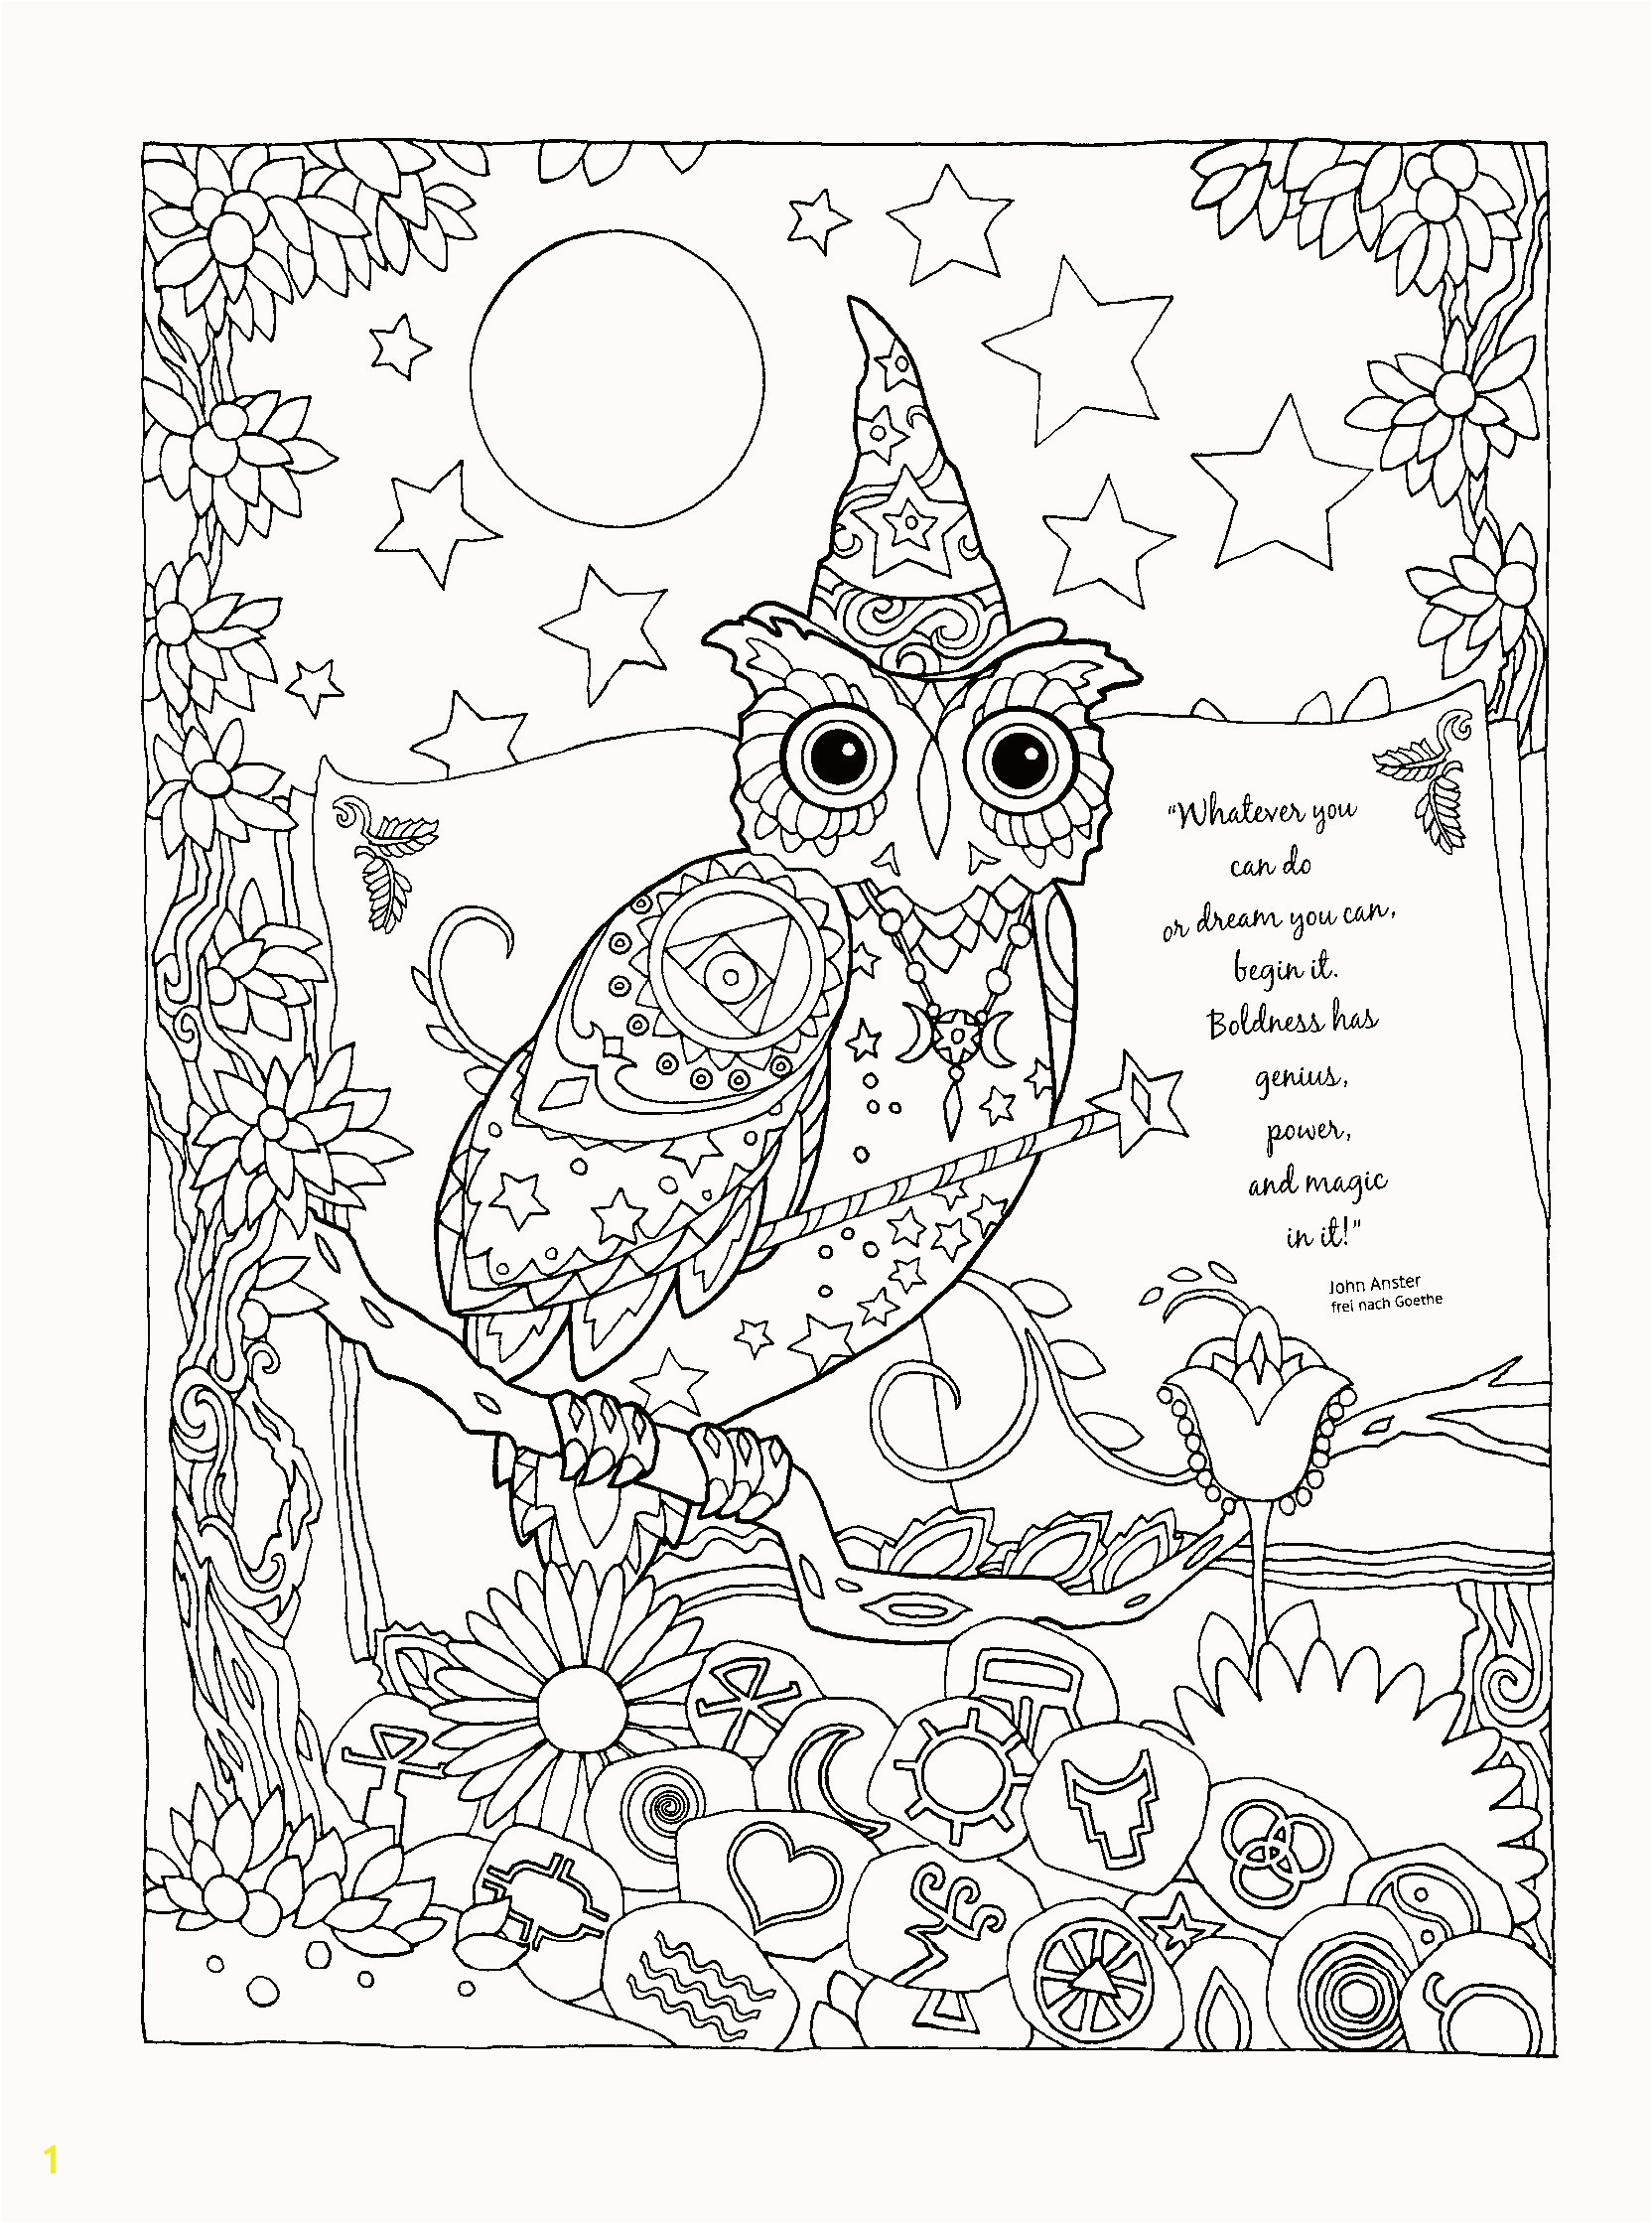 Printable Complex Animal Coloring Pages New Coloring Pages for Adults Printable Animals